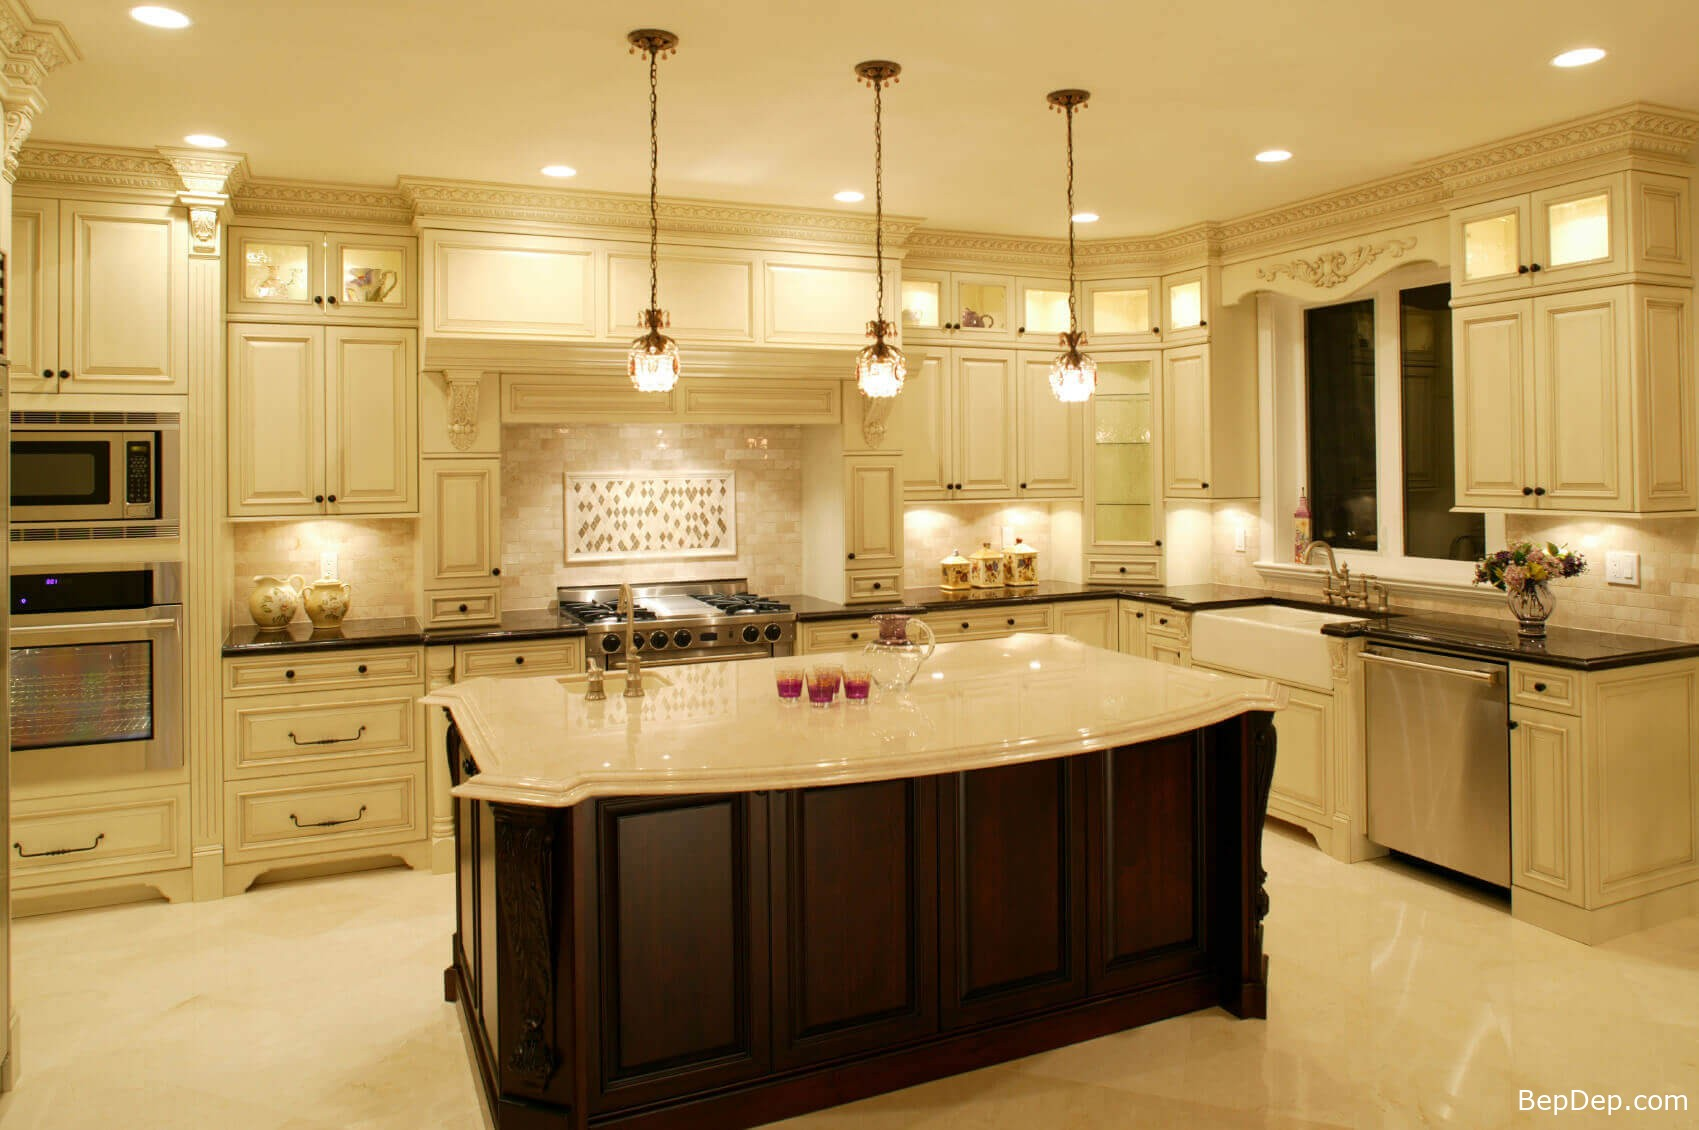 contemporary-kitchen-backsplash-ideas